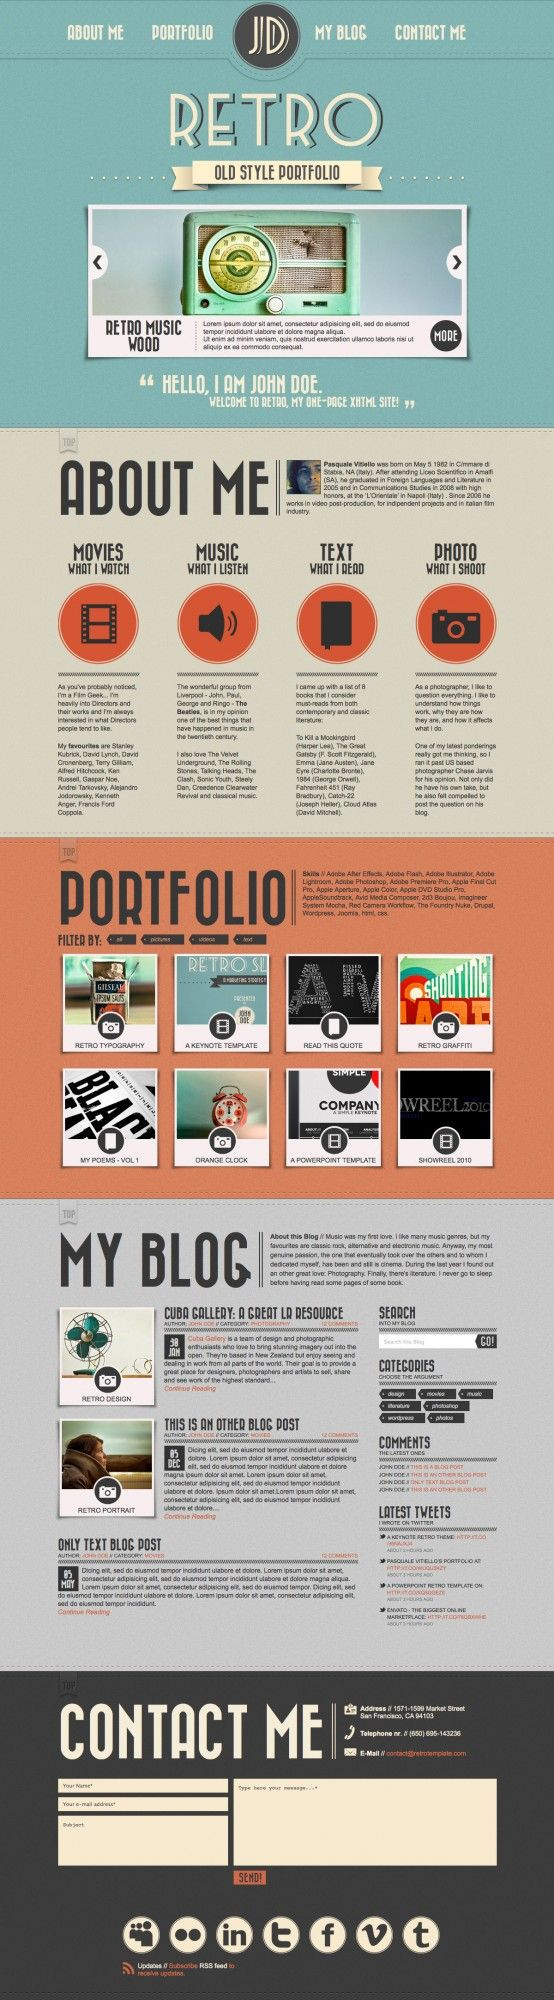 retro themed online portfolio design for the web i like the flat coloring